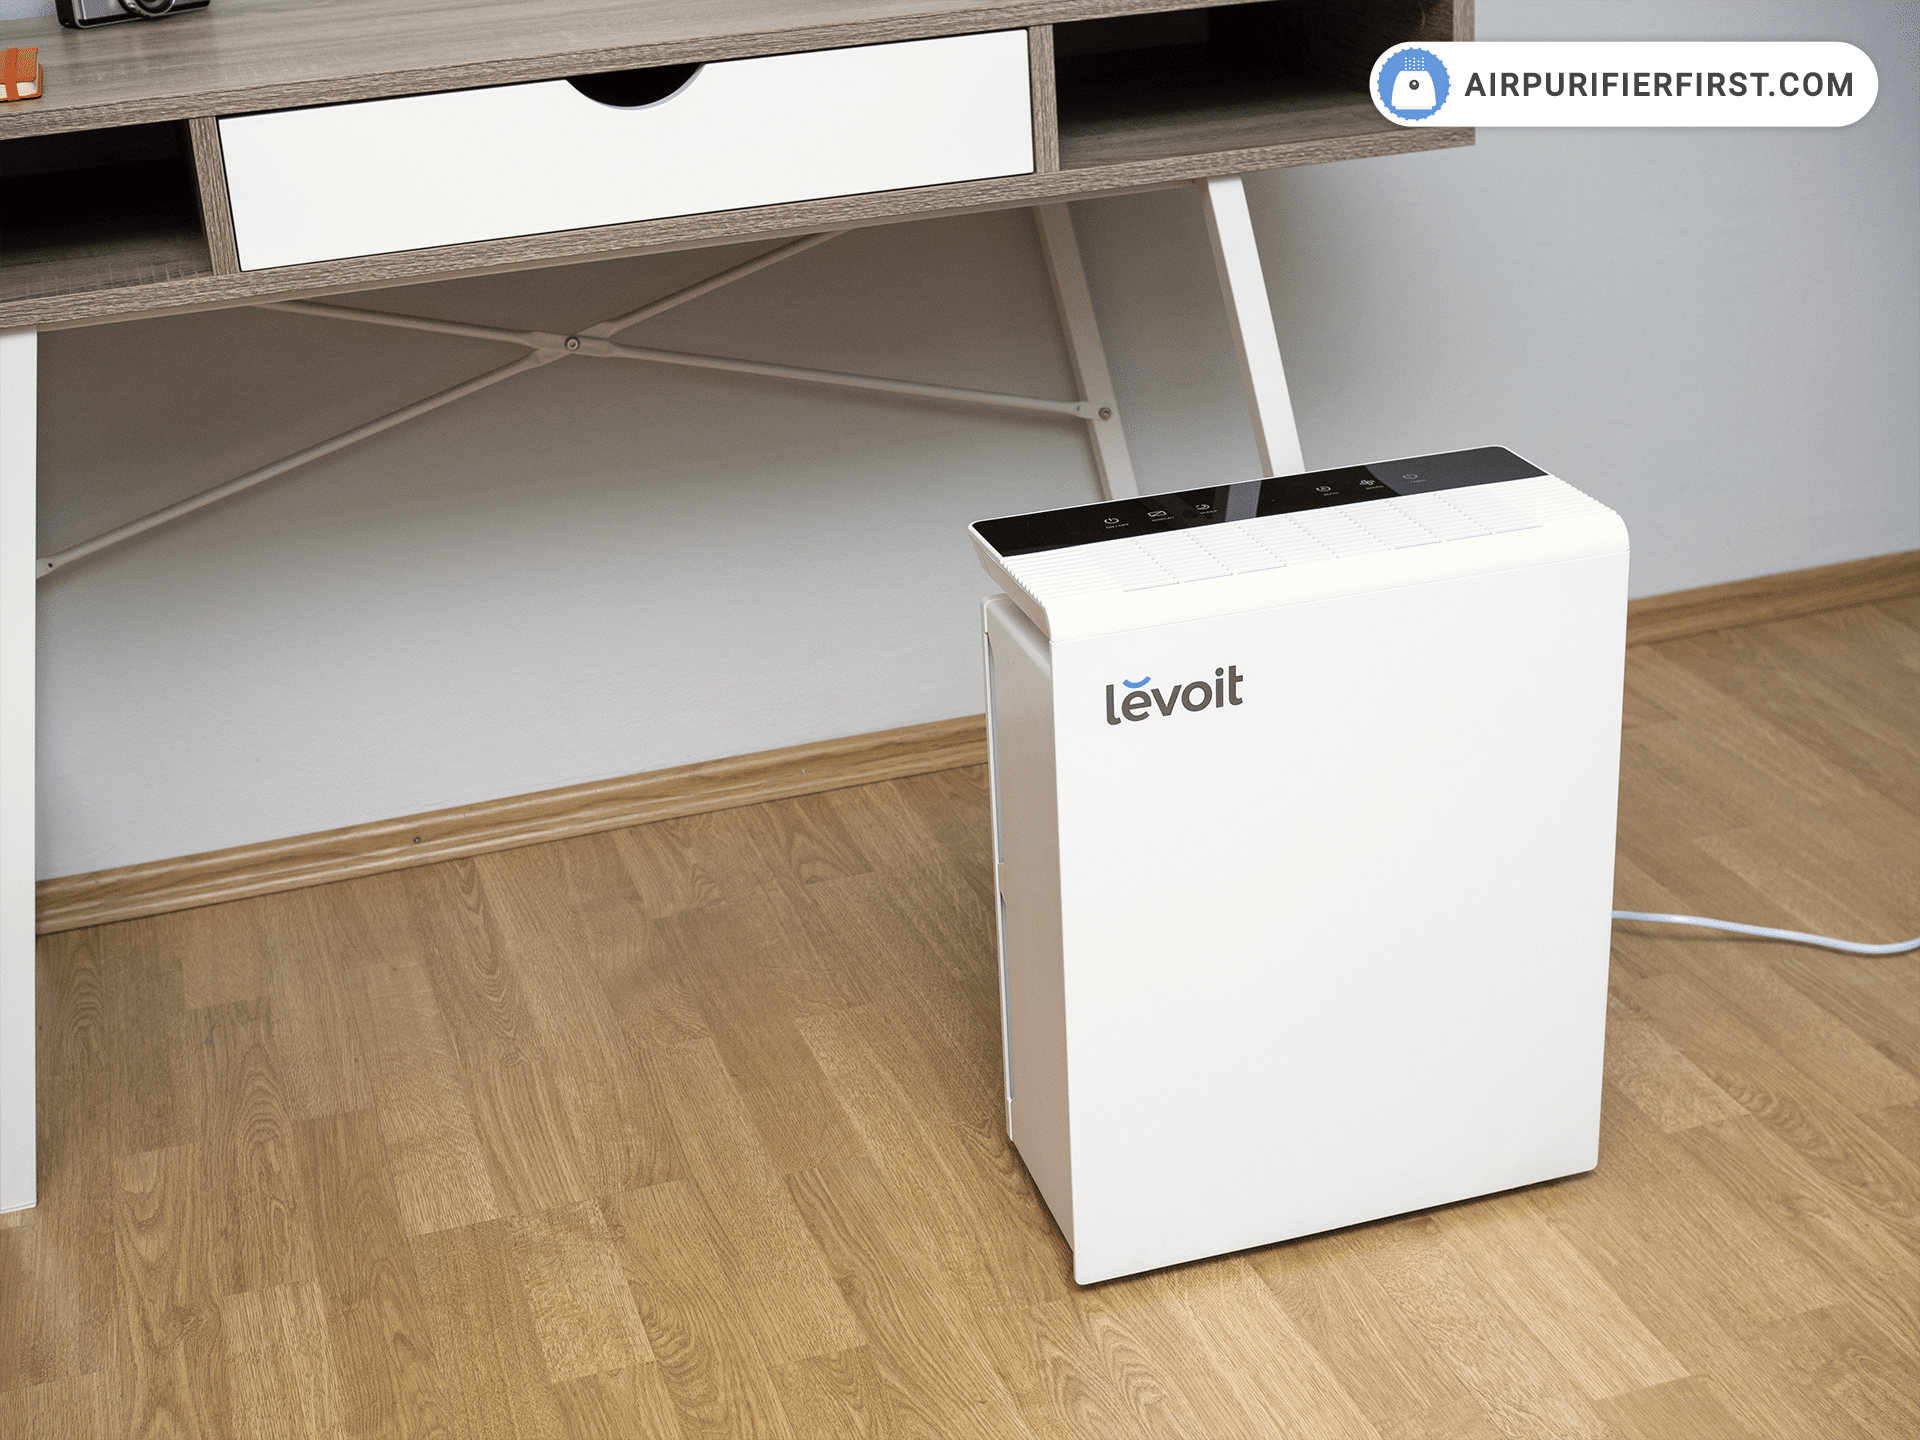 Levoit LV-PUR131 Air Purifier - In Front of the Office Desk